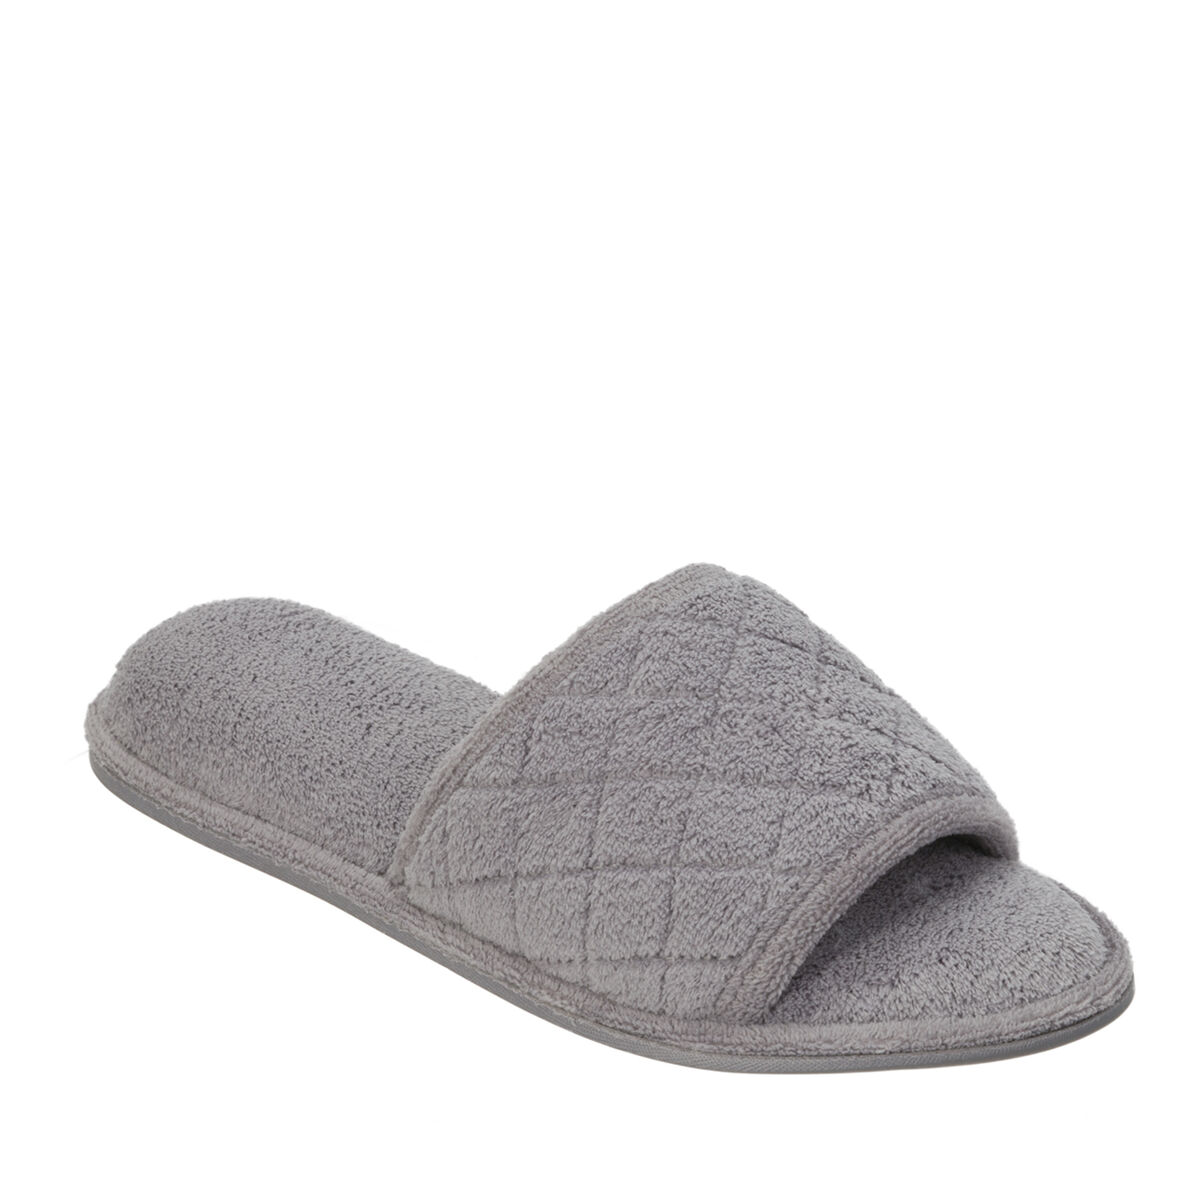 Women's Microfiber Terry Slide with Quilted Vamp